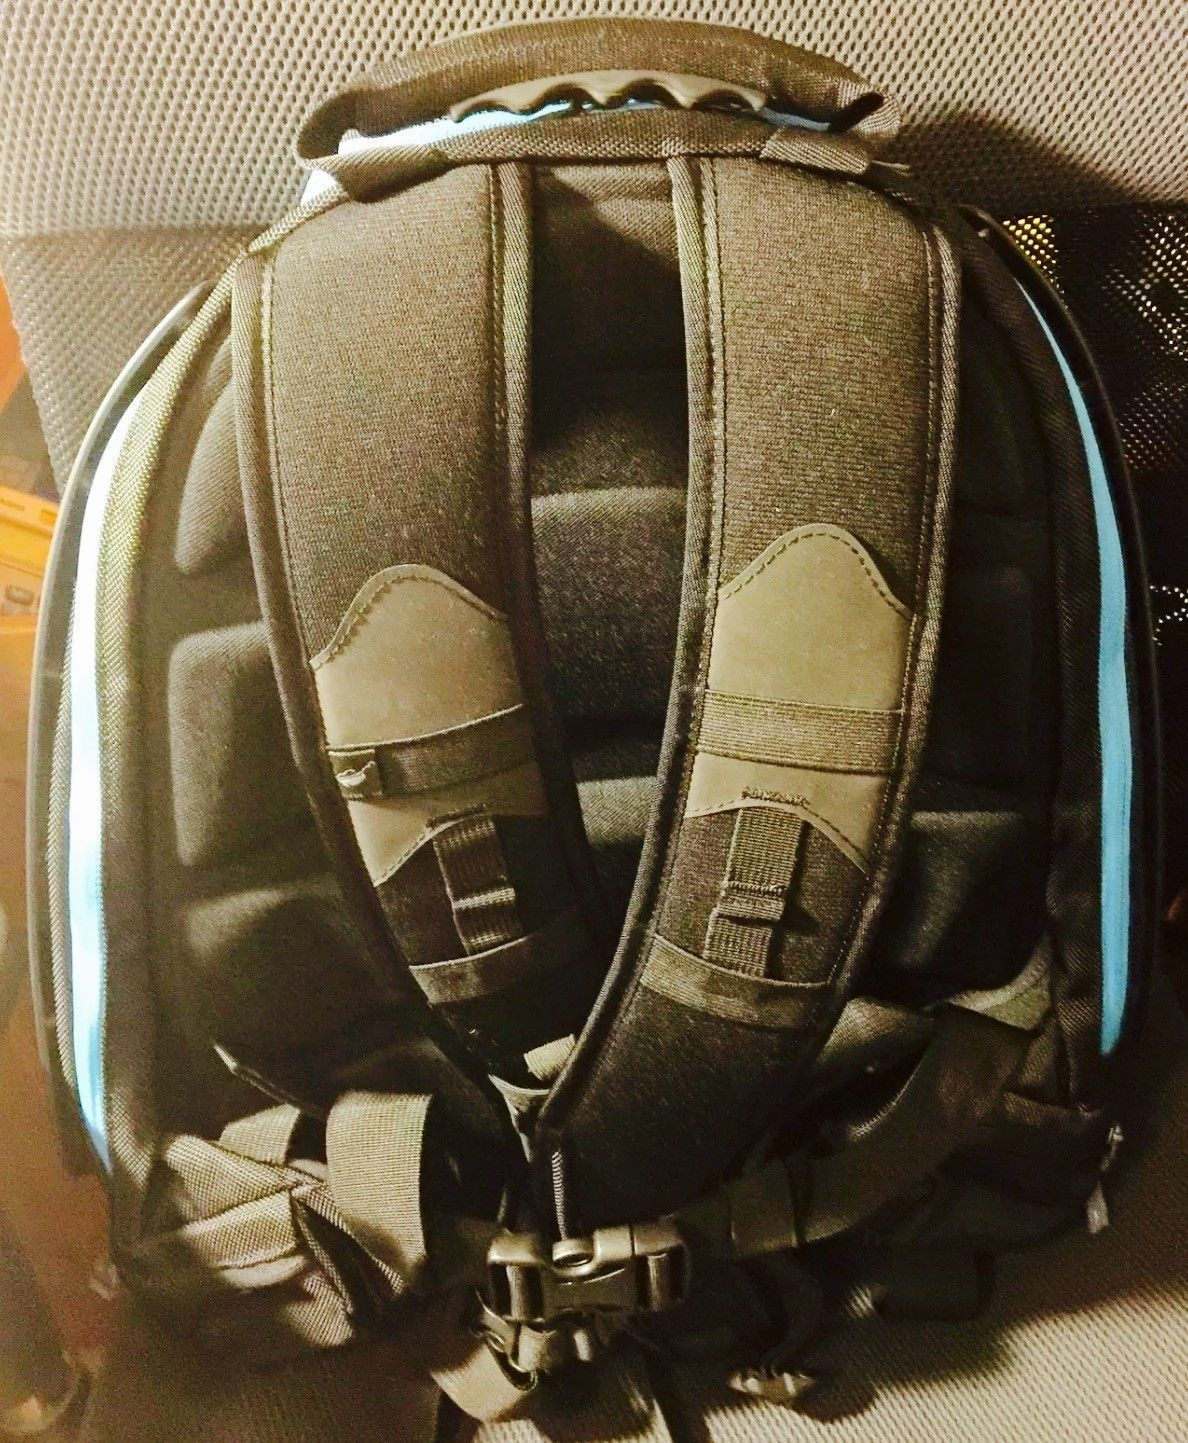 New Tron Hardshell Backpack - image.jpeg